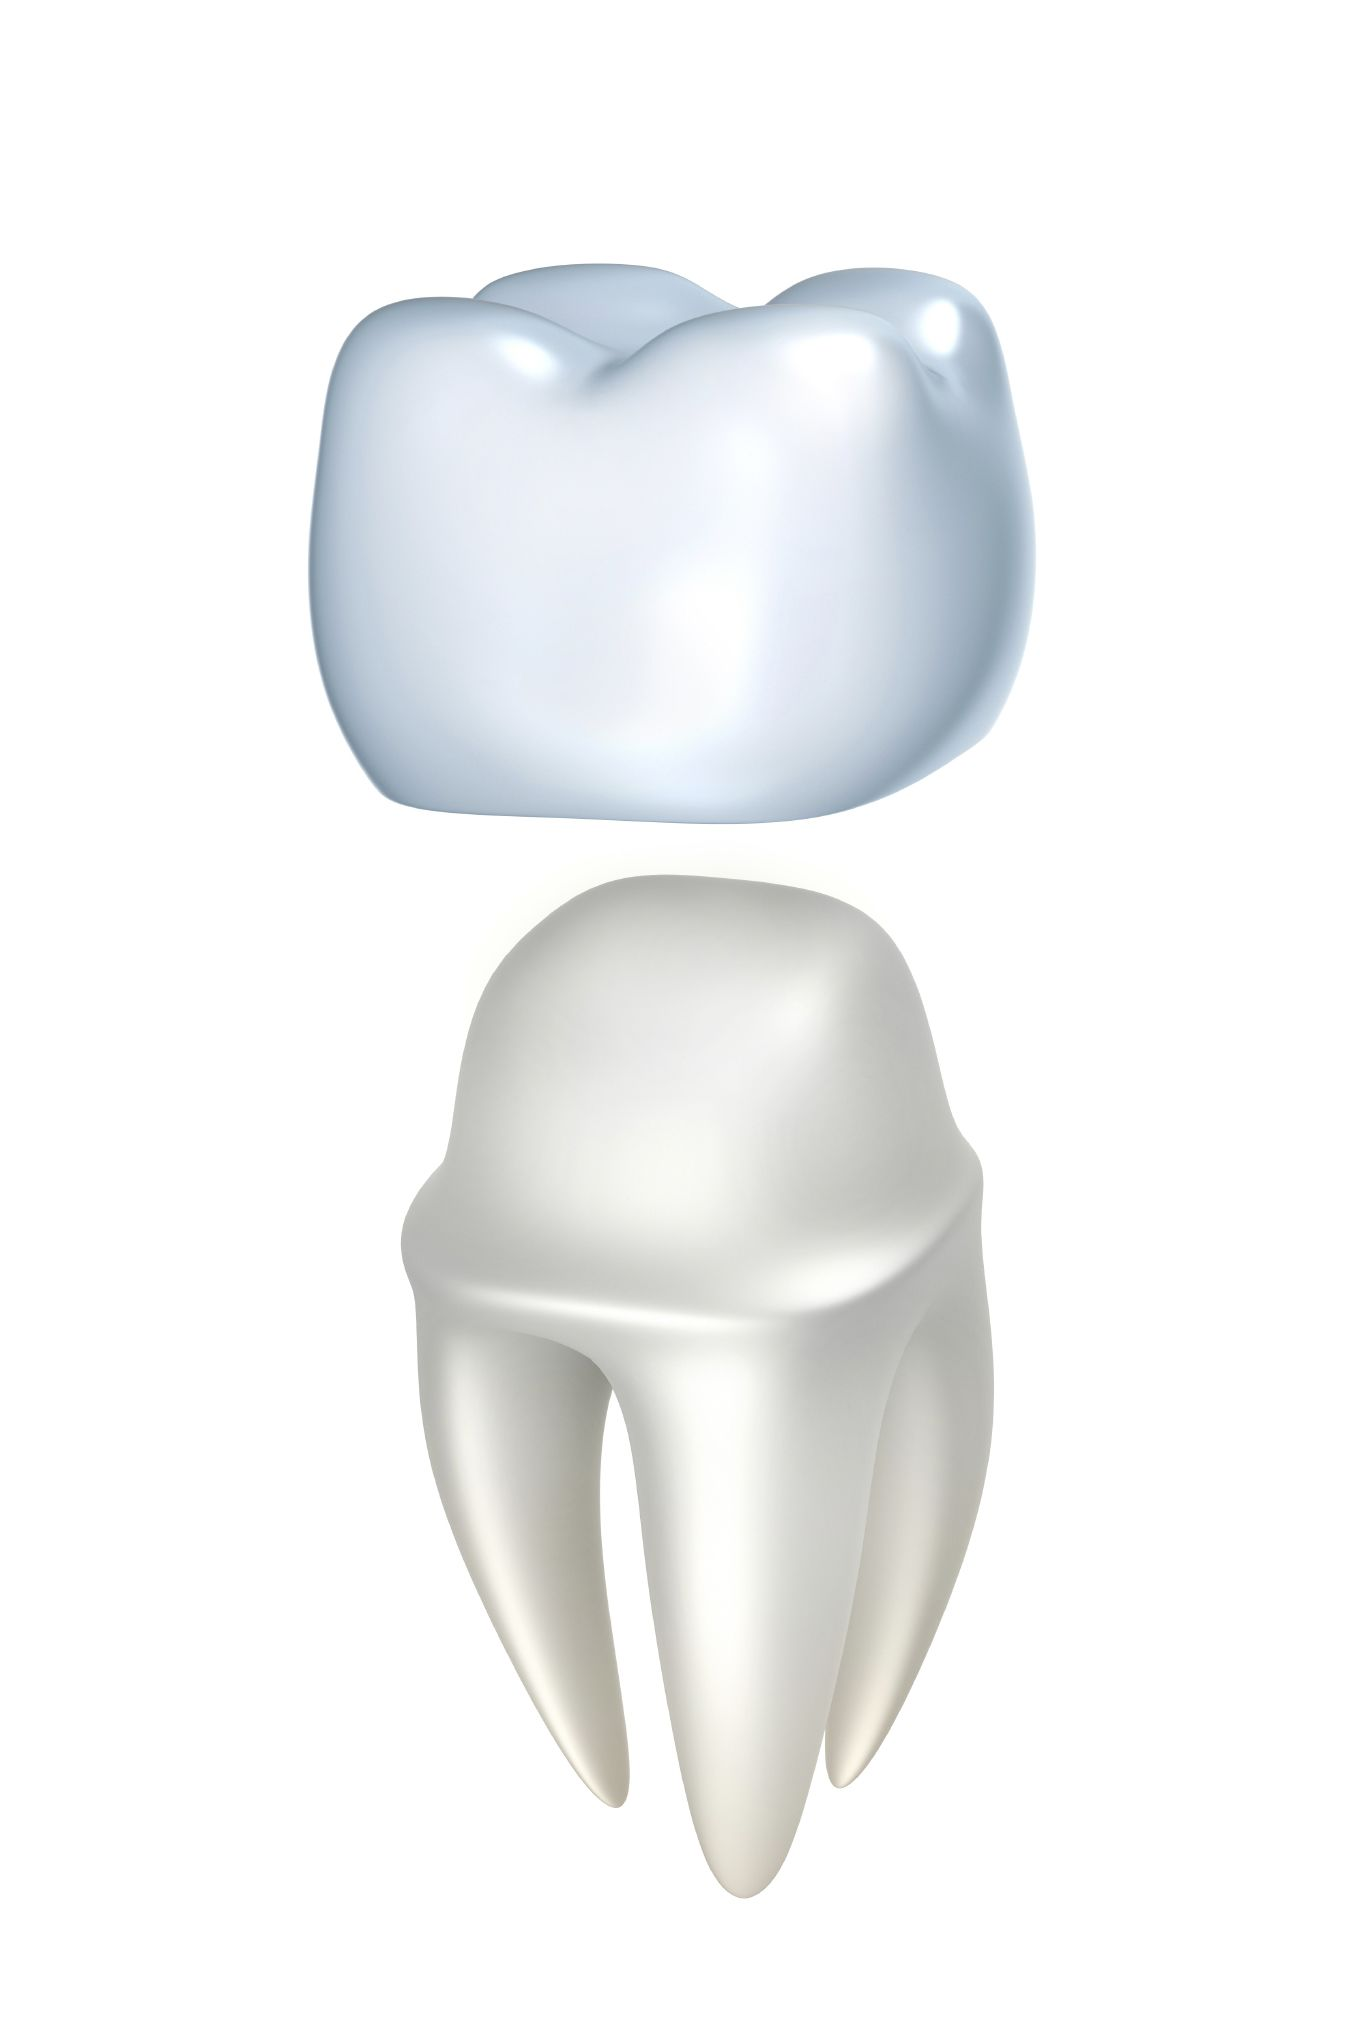 A porcelain dental crown over a tooth